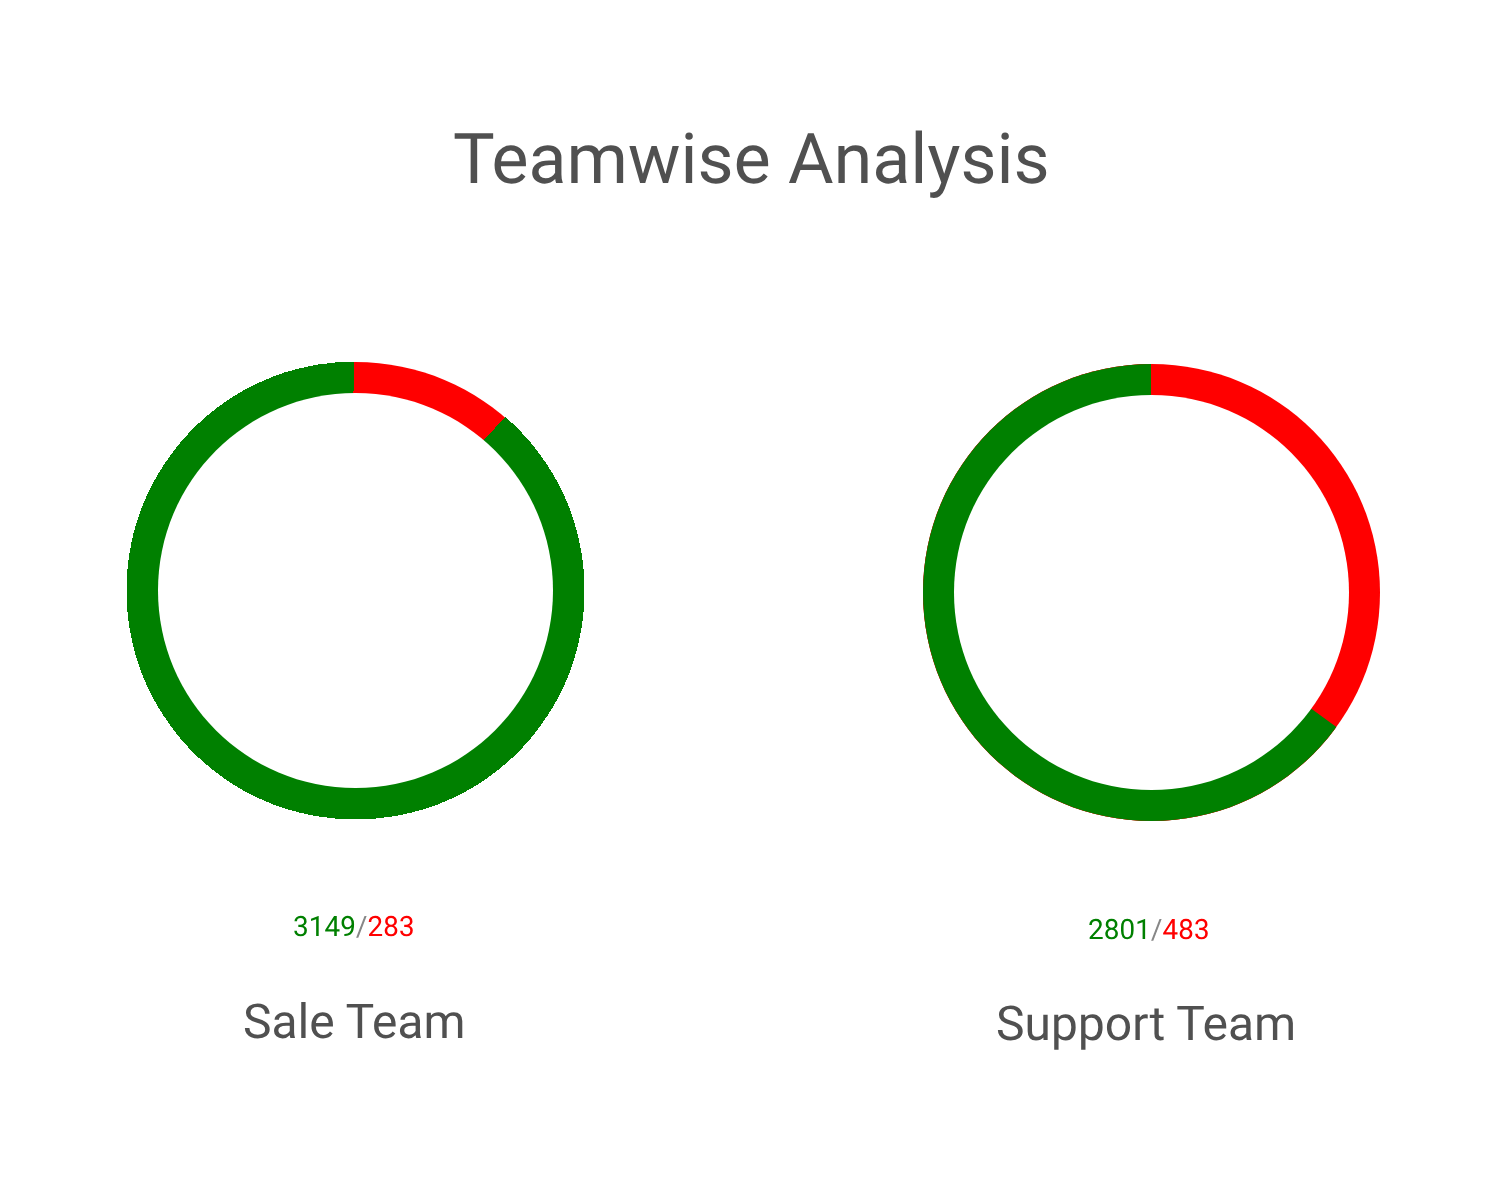 Team-wise Analysis